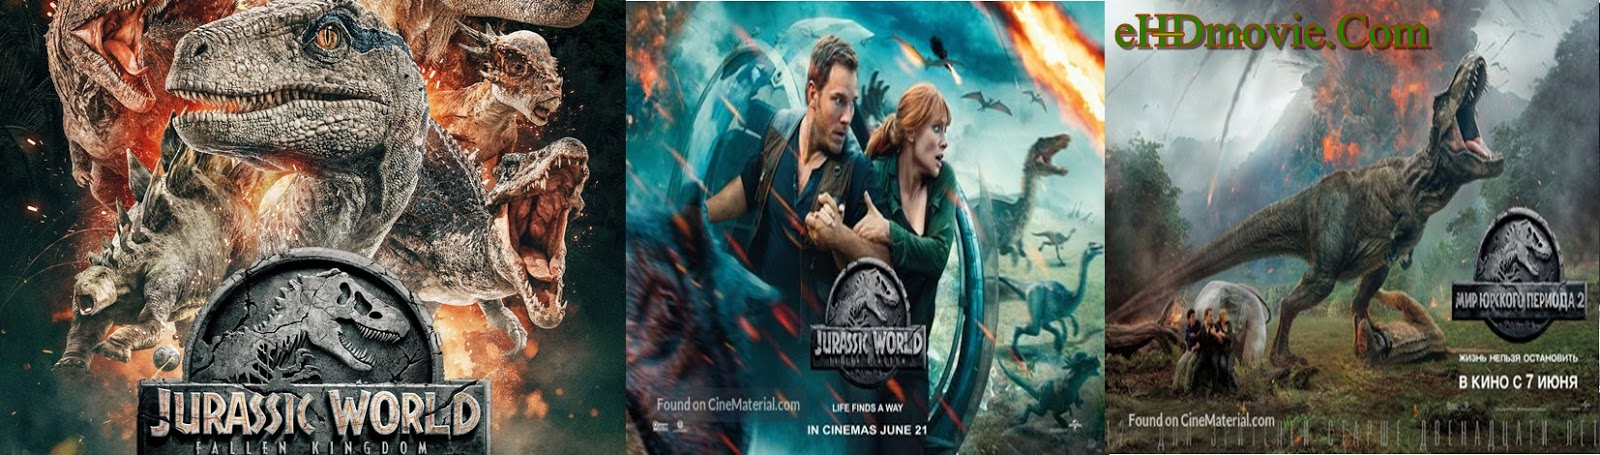 Jurassic World Fallen Kingdom 2018 Full Movie Dual Audio [Hindi – English] 1080p - 720p - HEVC - 480p ORG WEB-DL 400MB - 650MB - 1GB - 2GB ESubs Free Download